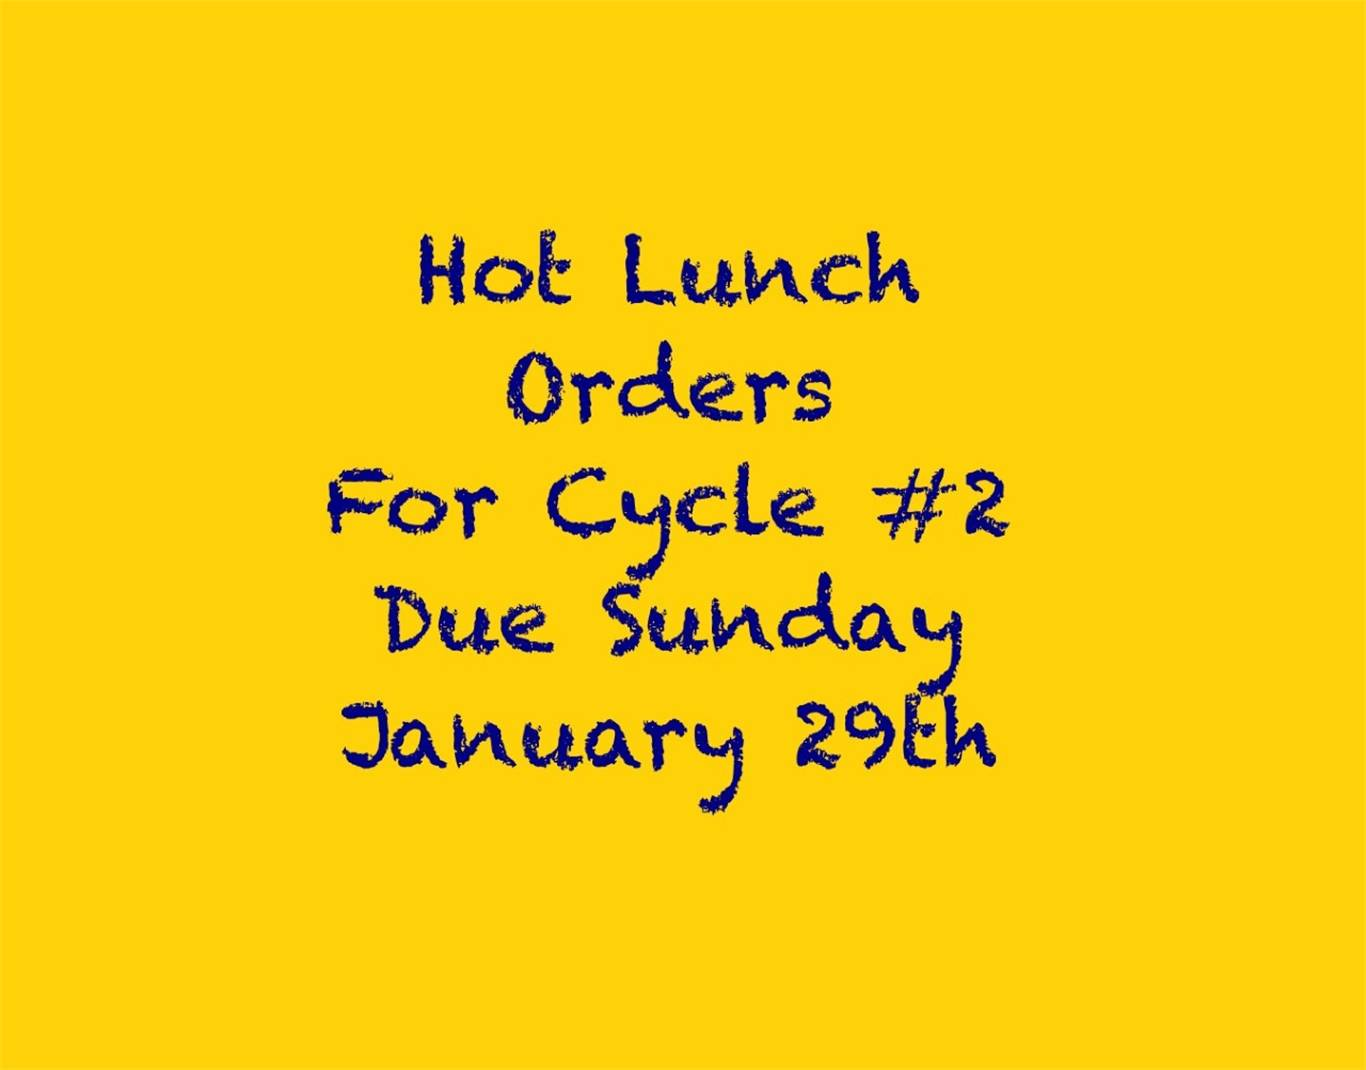 Final Reminder about Hot Lunch and Milk Mondays, End of Cycle 1 Feb. 12th (for those who ordered) and  Start of Cycle 2 Fri. Feb 17th (for those who place an order before Jan. 29th)-updated Jan. 28th